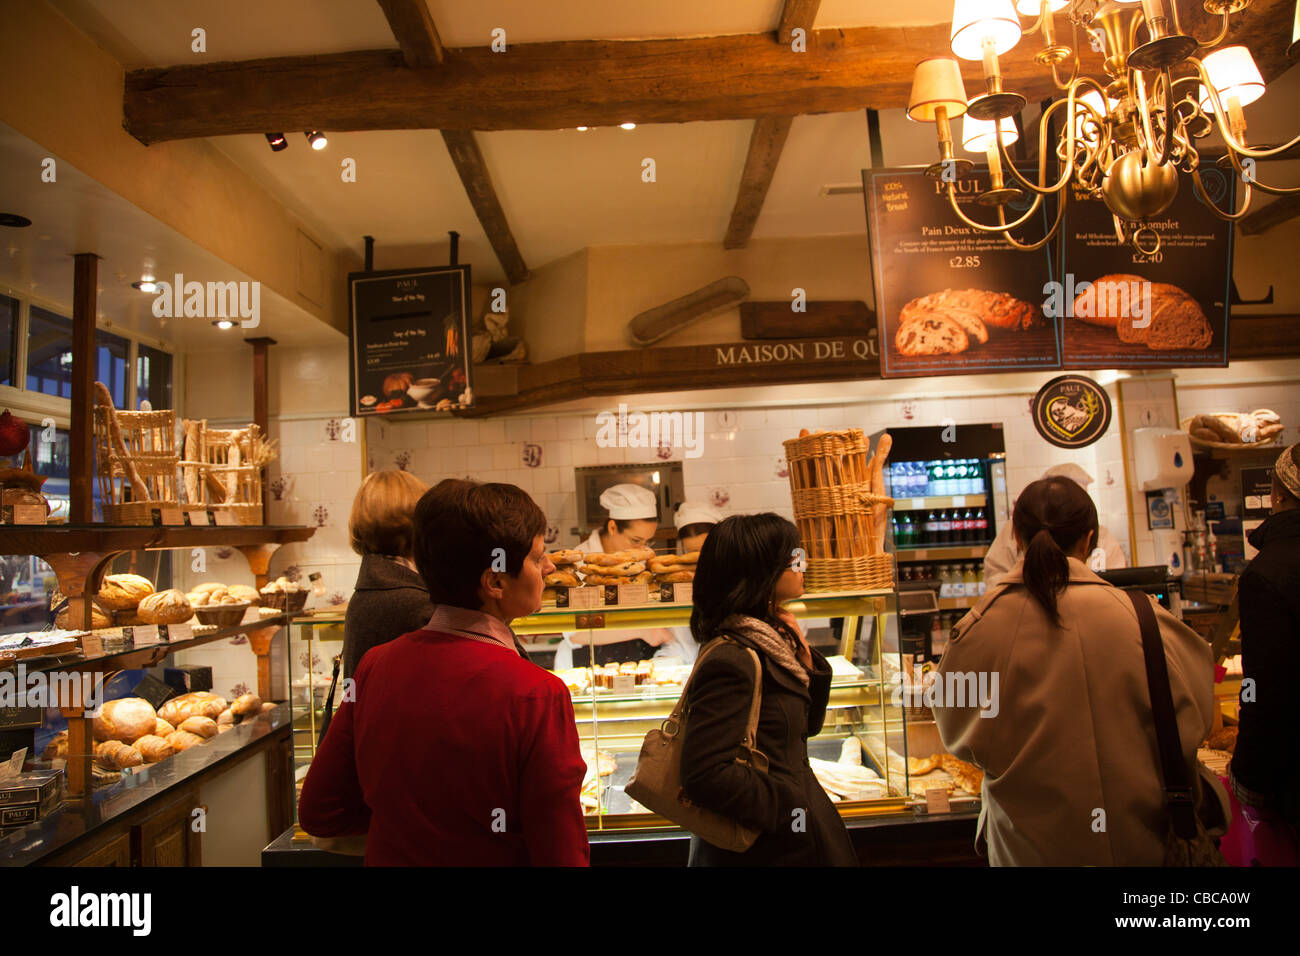 Paul Patisserie in Richmond - Stock Image